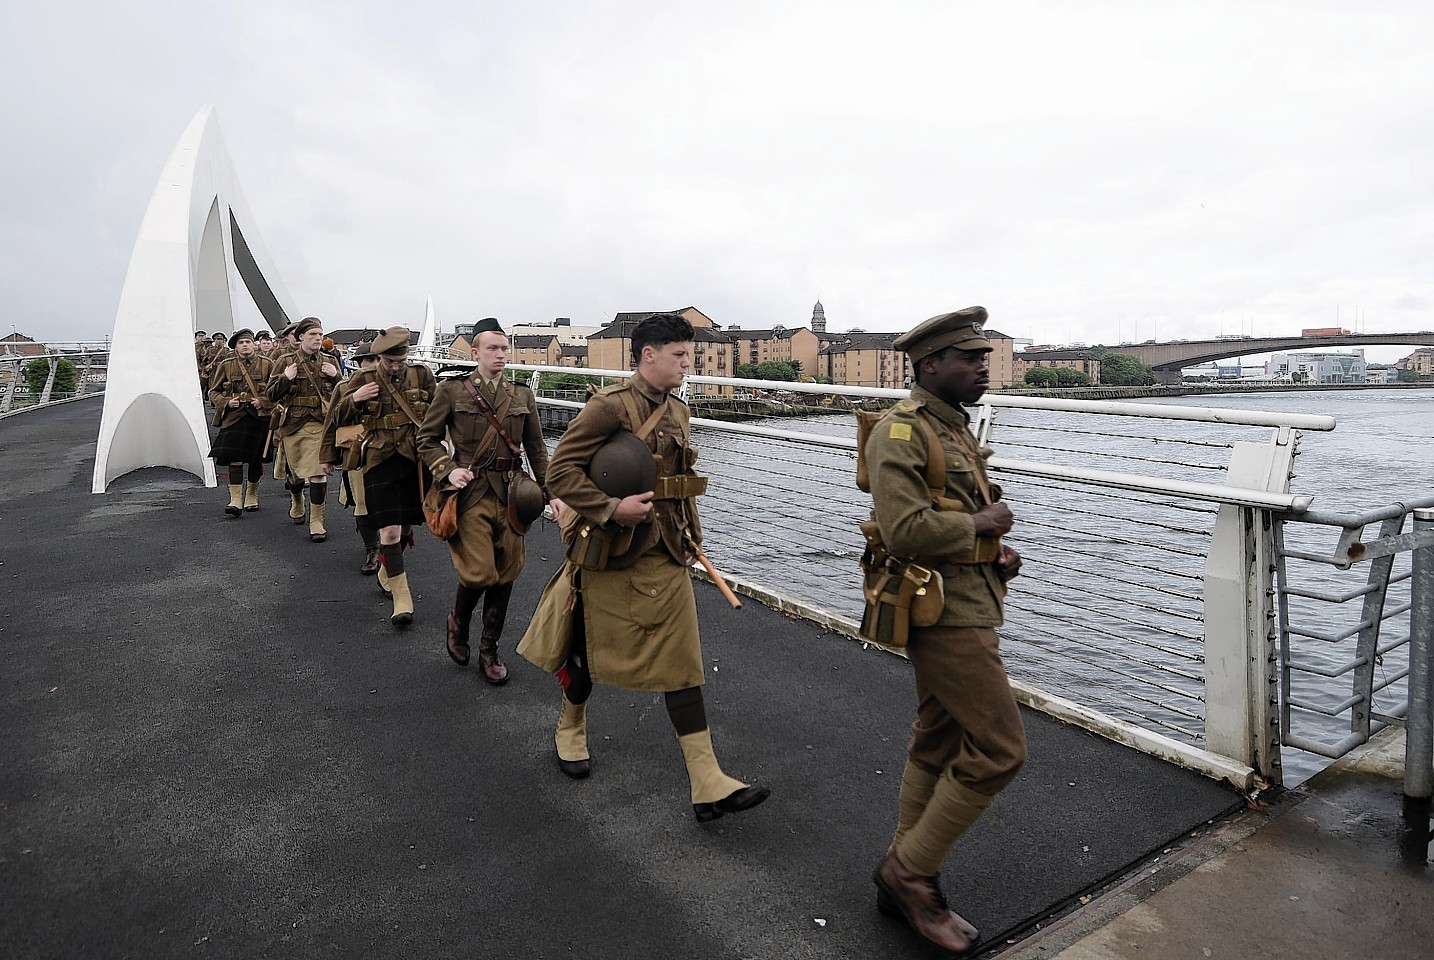 People dressed as soldiers as part of a mysterious tribute to mark the centenary of the Battle of the Somme that has popped up in Glasgow.